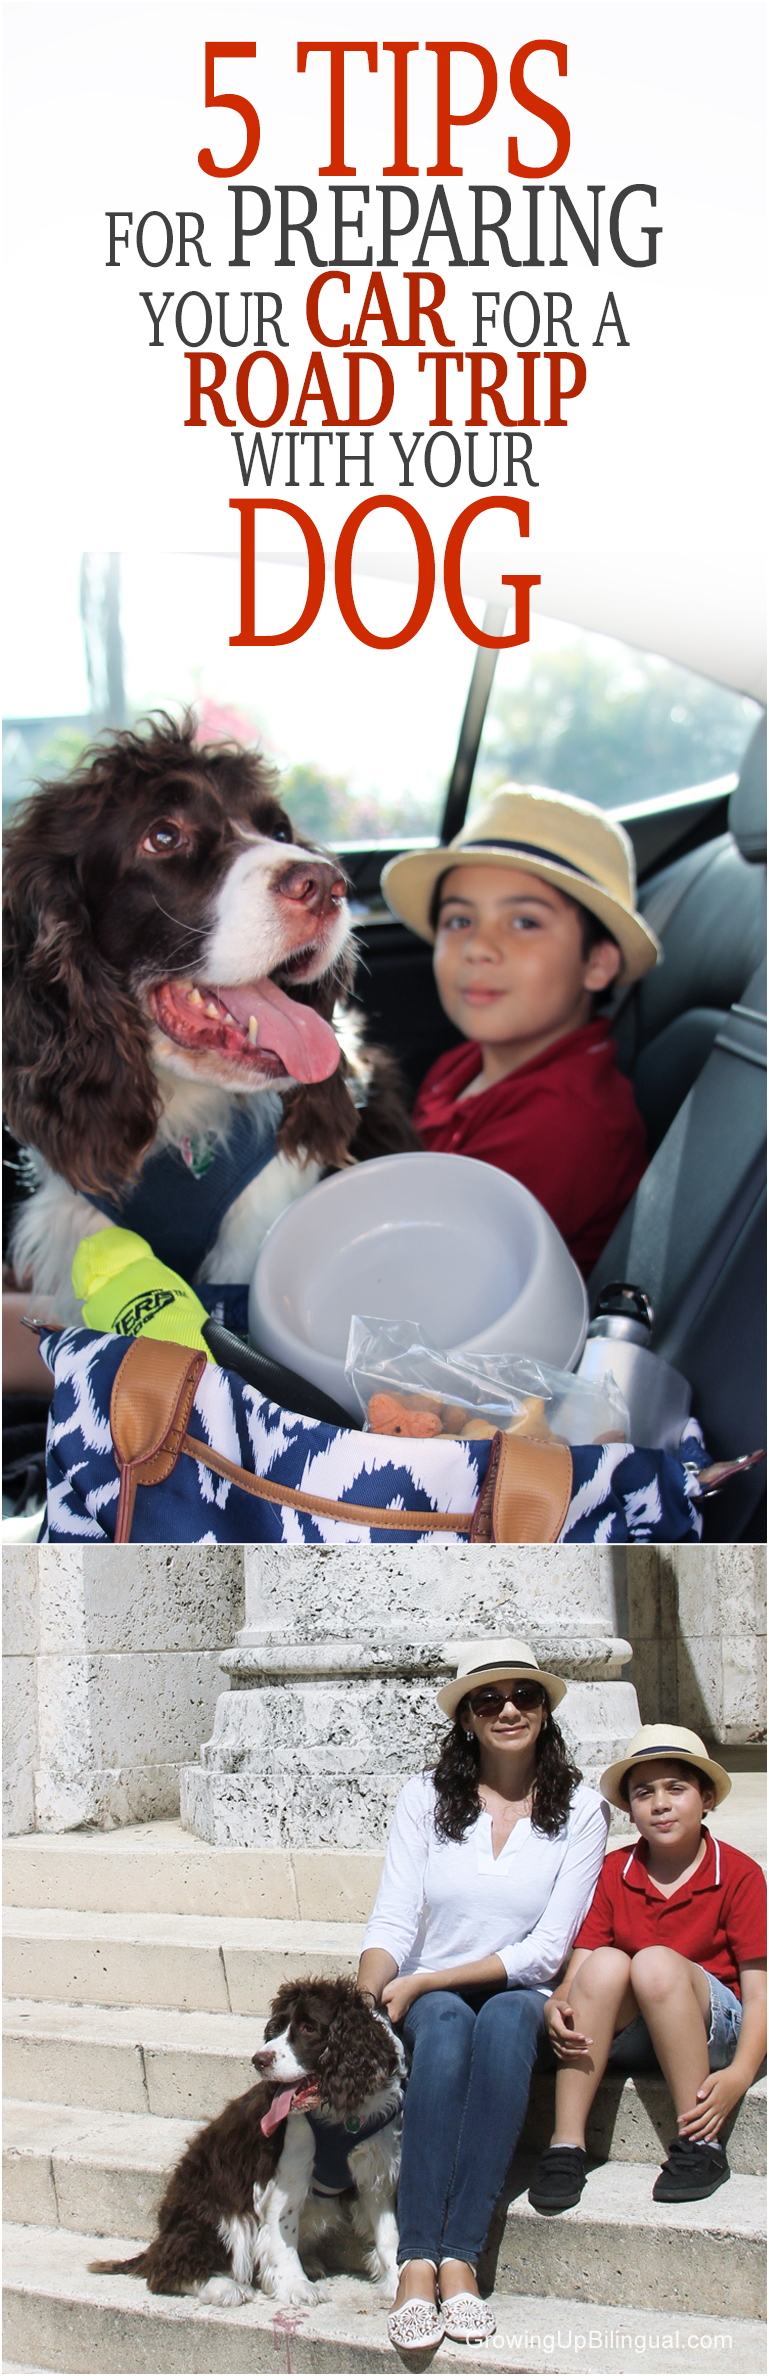 5 Tips For Preparing Your Car For A Road Trip With Your Dog